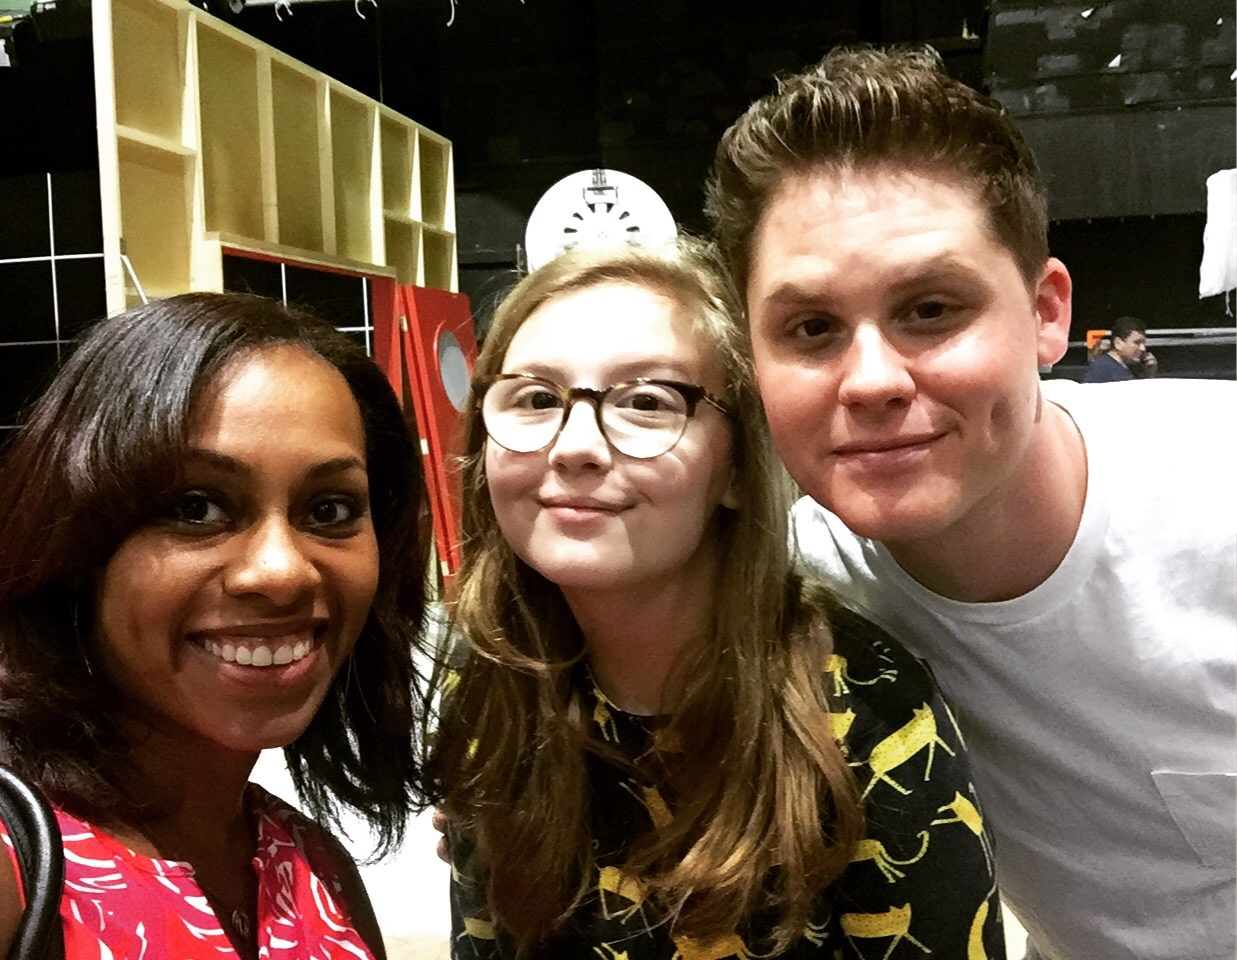 Ari Adams, Disney and ABC Blogger with Matt Shively and Bebe Wood of The Real O'Neals